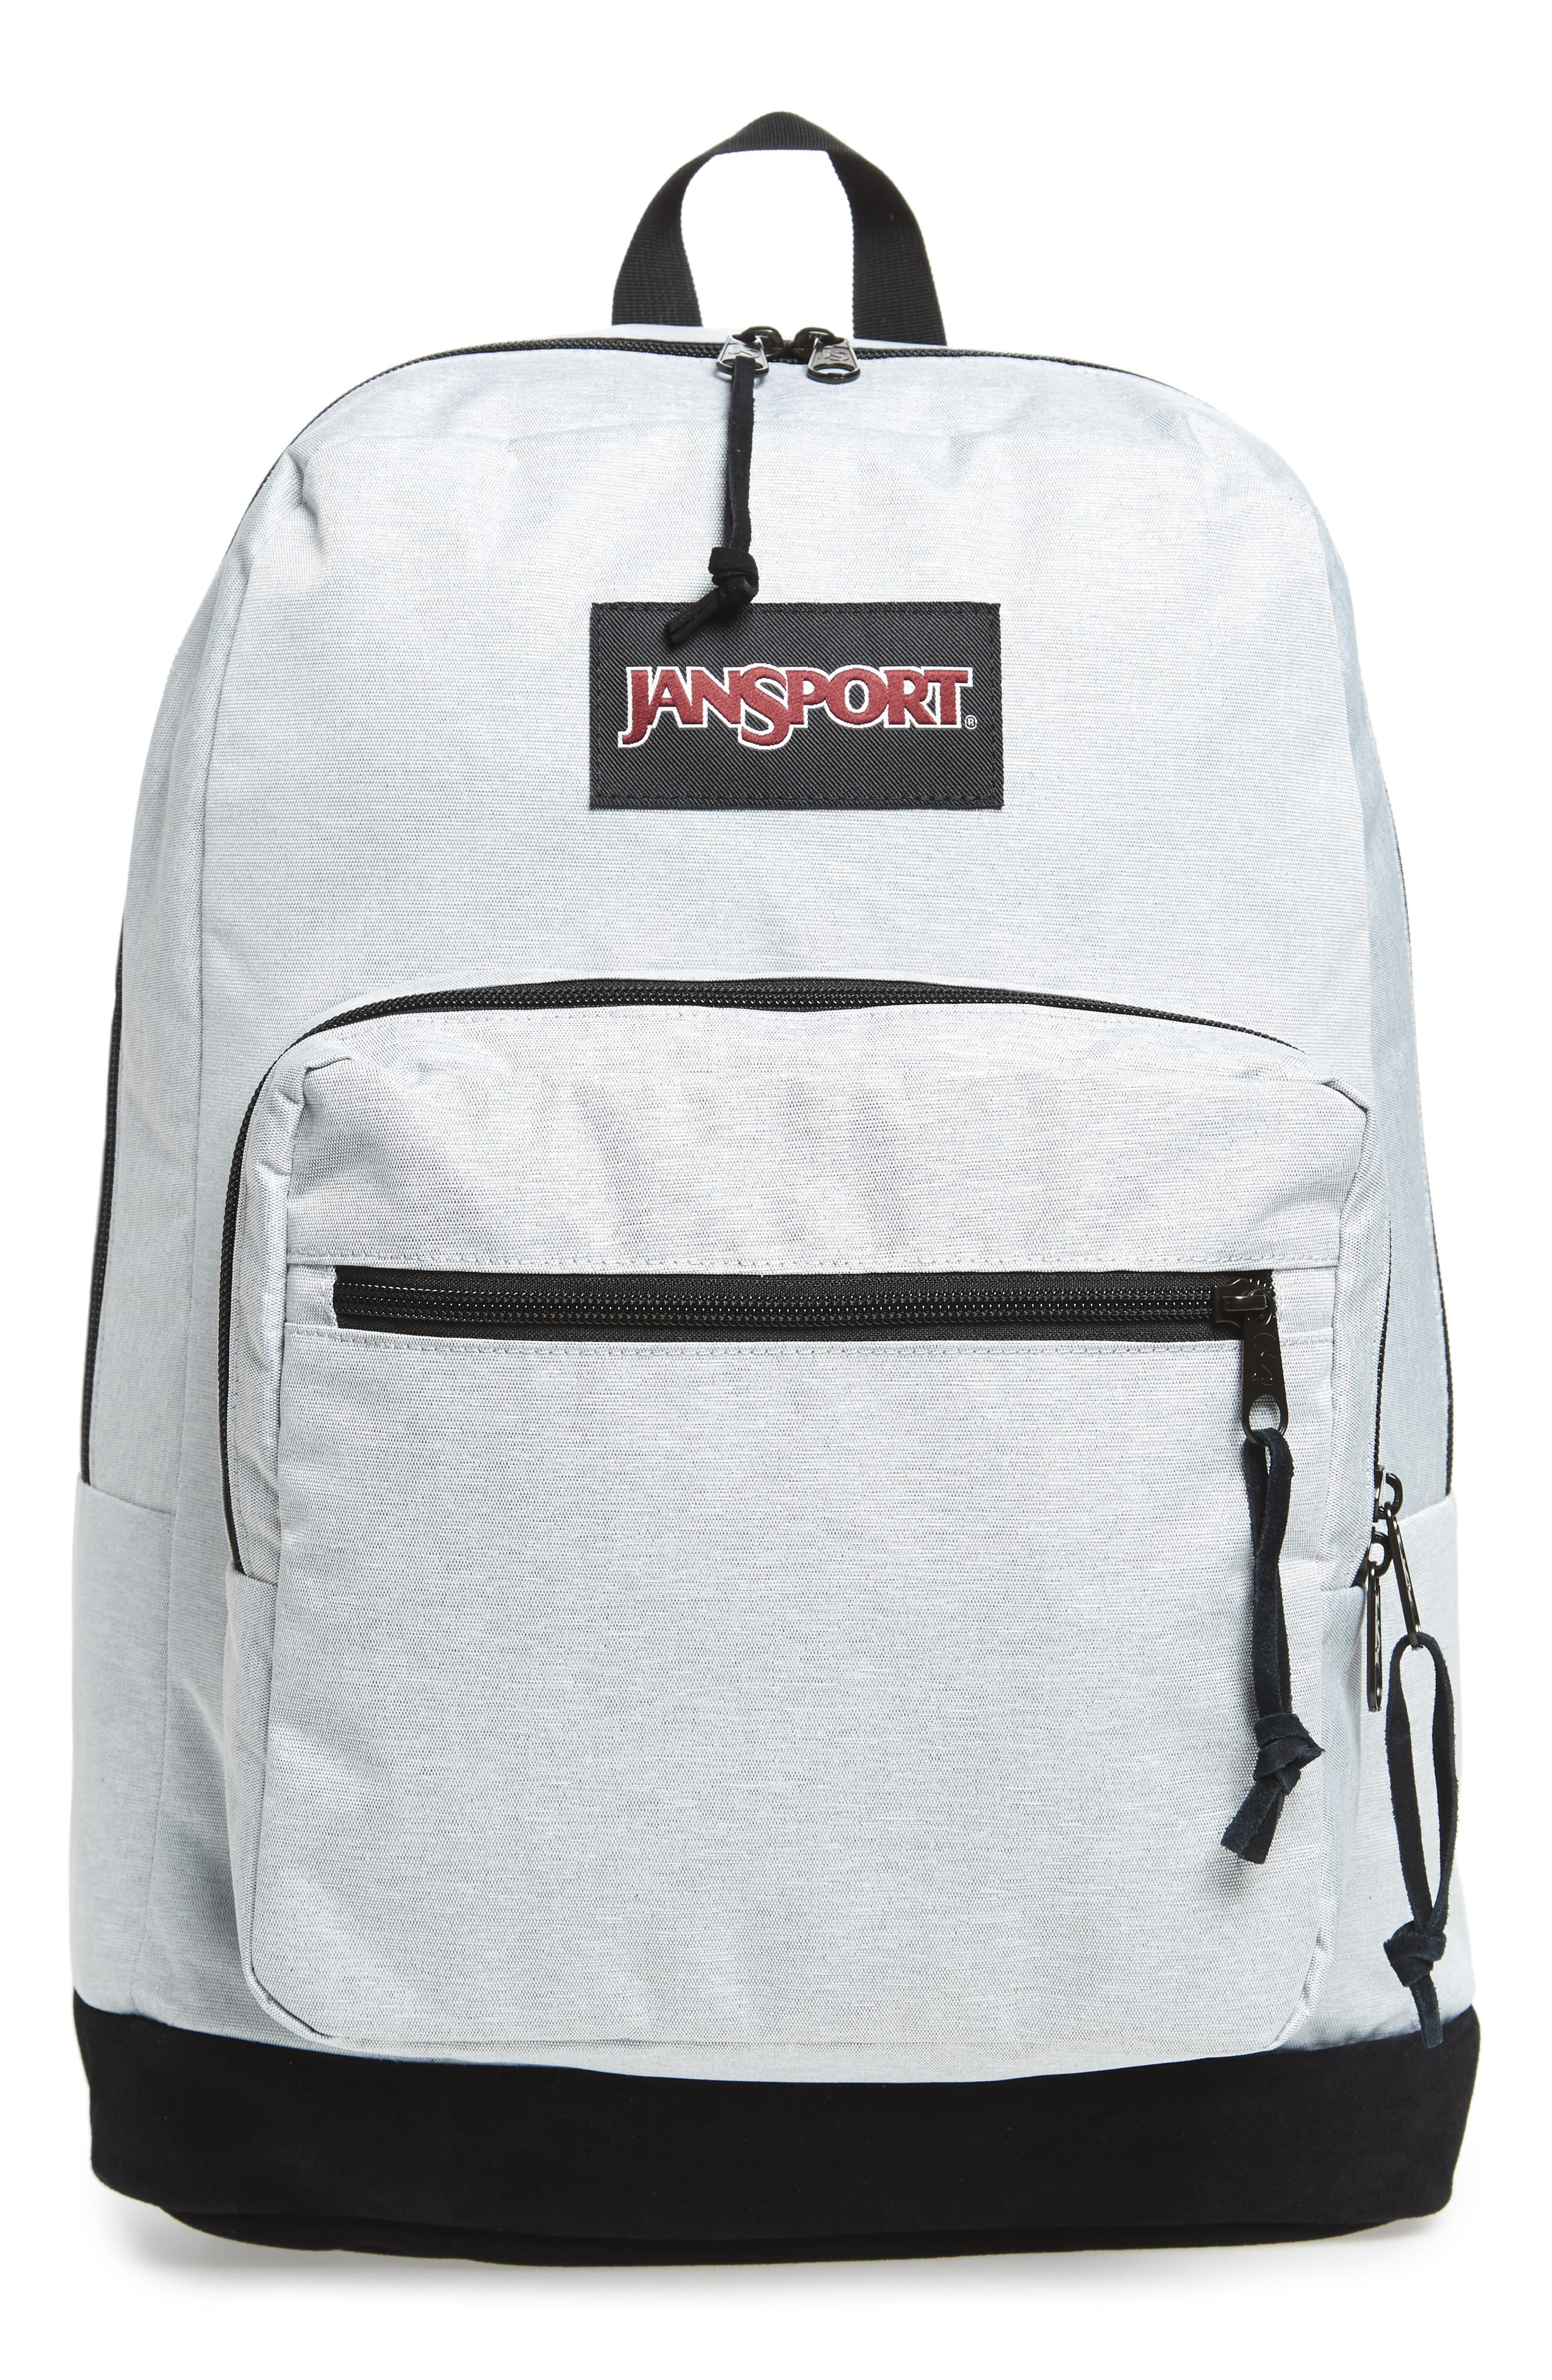 'Right Pack' Backpack,                             Main thumbnail 1, color,                             MICRO GRID